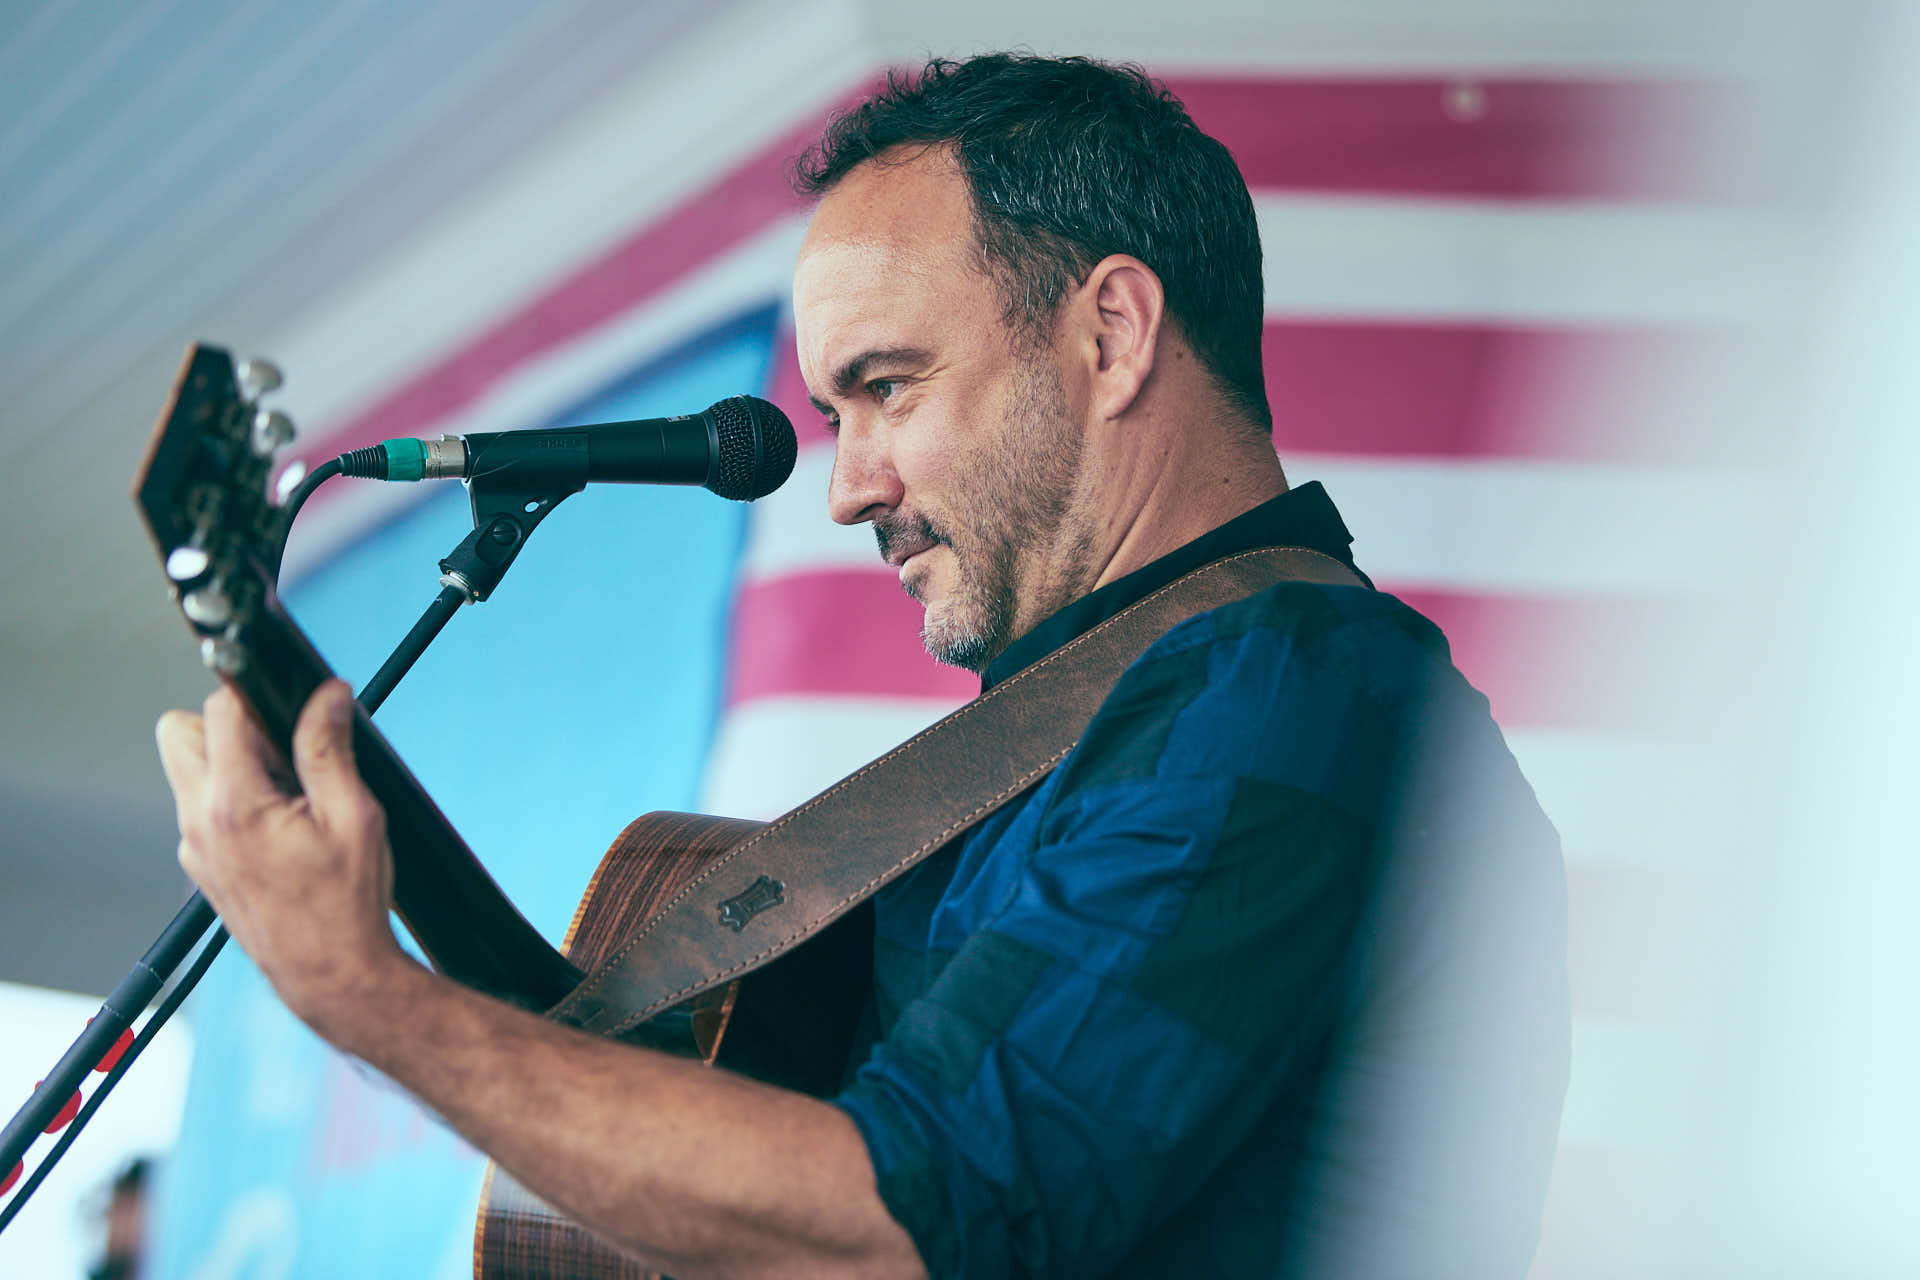 Concert Editorial of Dave Matthews performing acoustic by Boston based photographer Greg Caparell